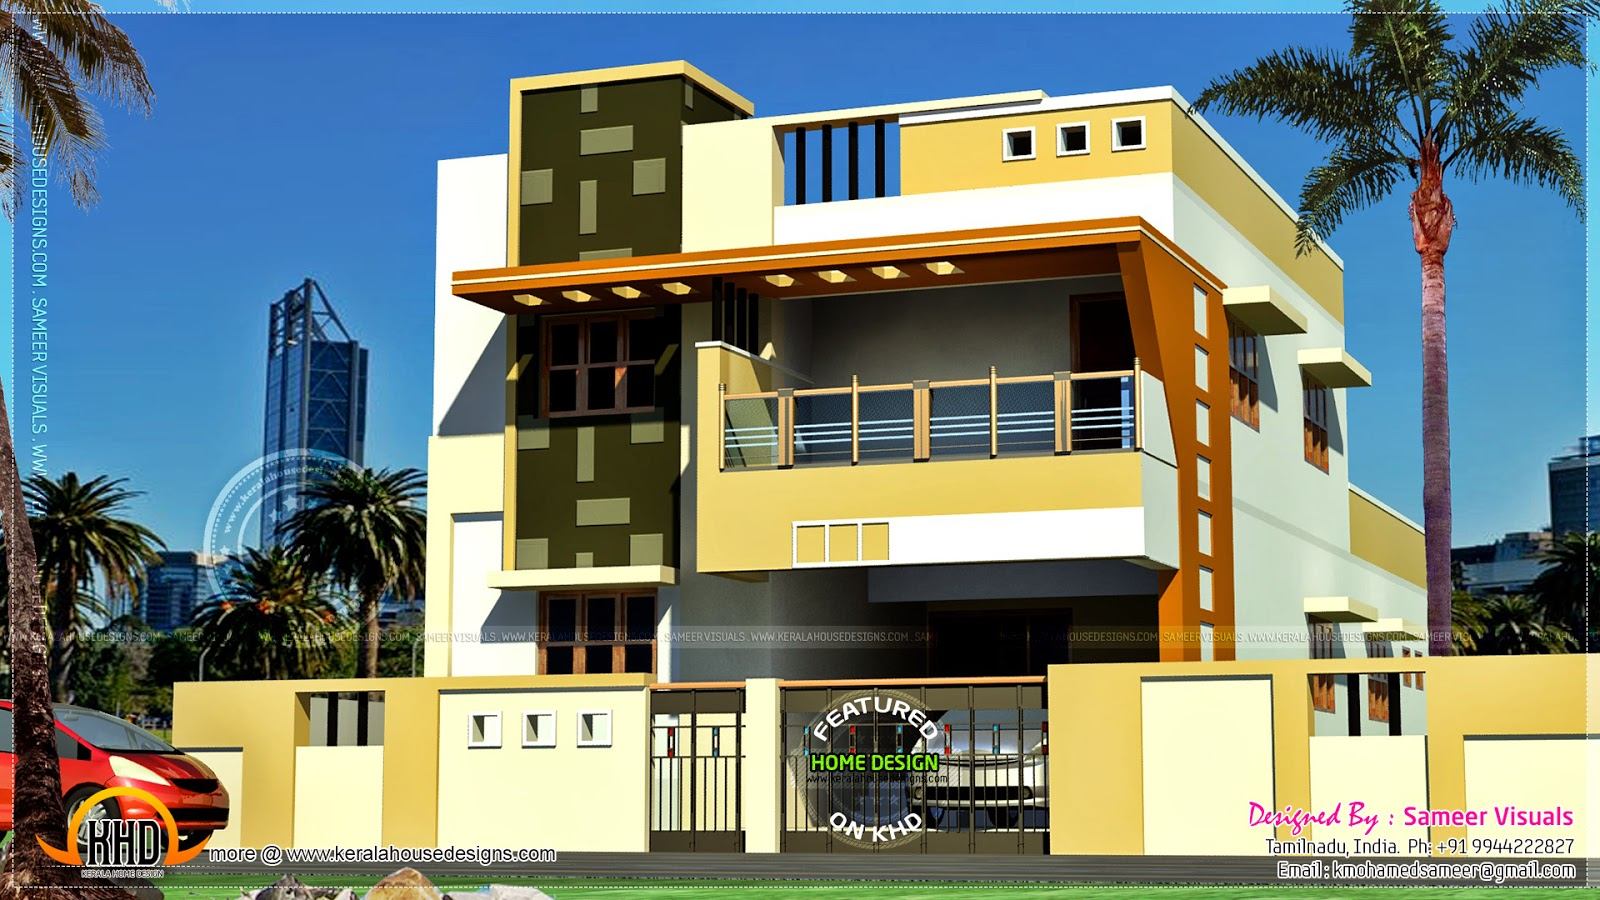 Modern south indian house design kerala home design and for Home plan design india